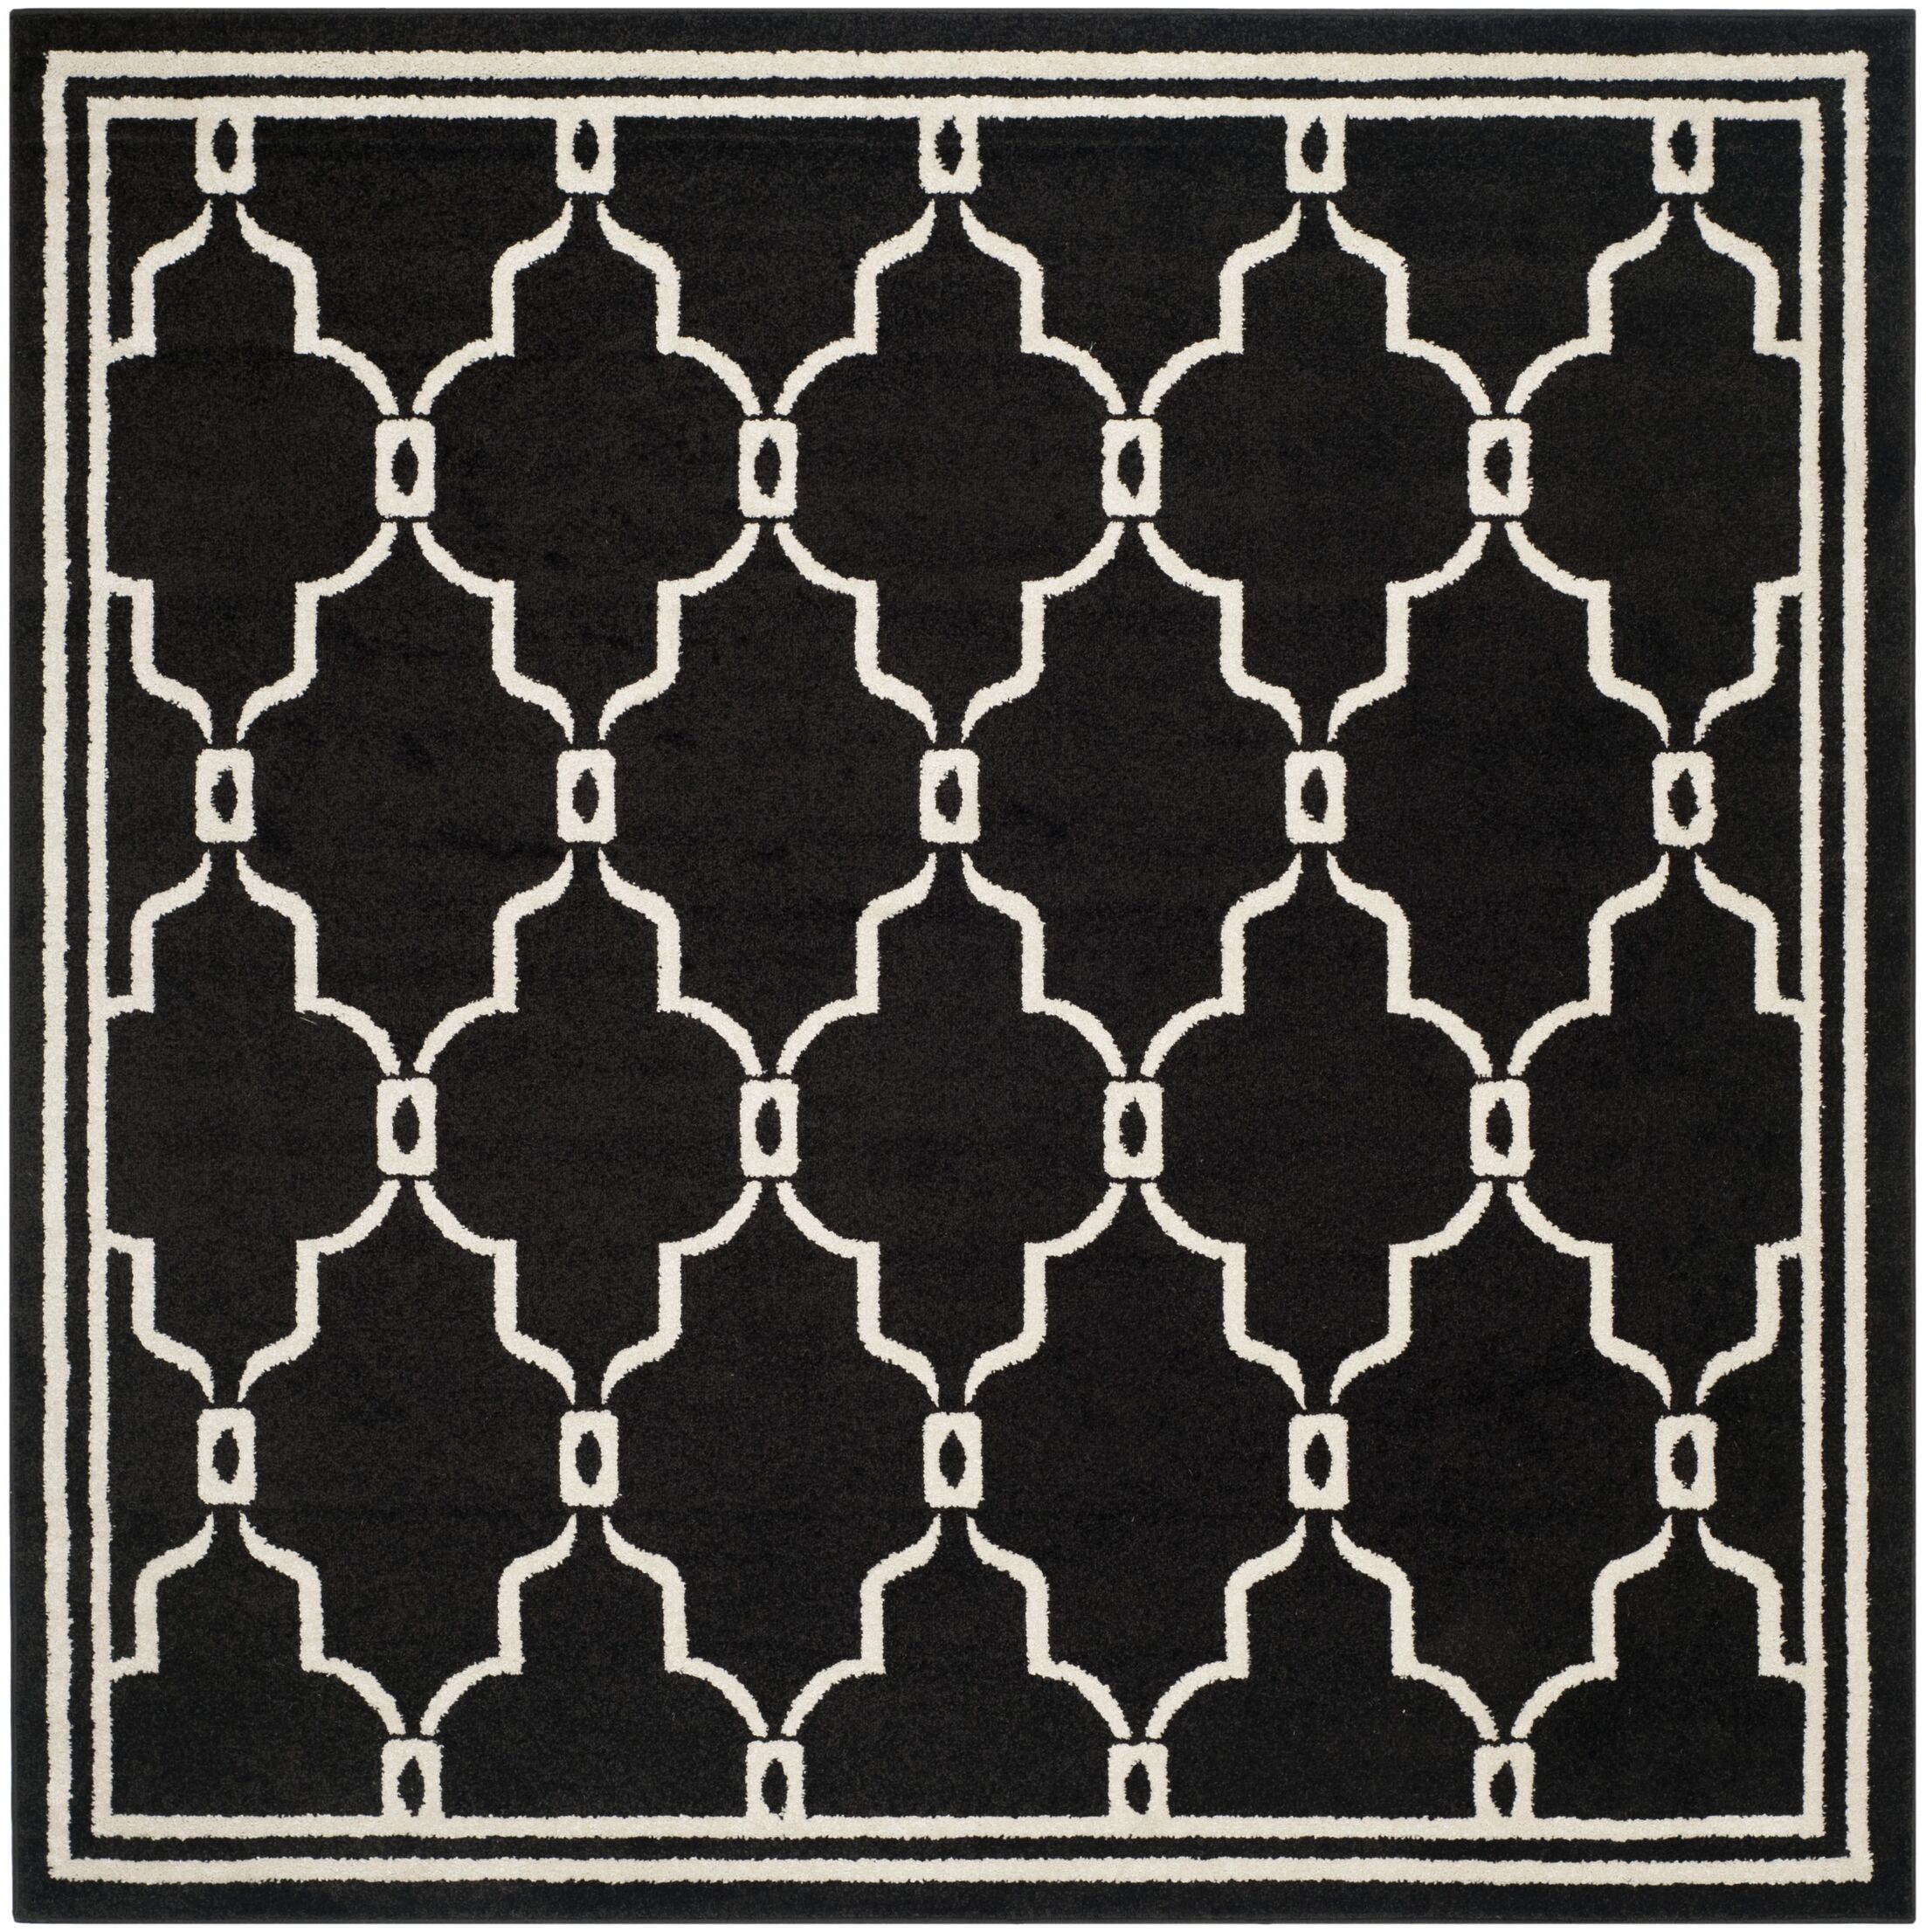 Wason Geometric Anthracite/Ivory Outdoor Area Rug Rug Size: Square 7'